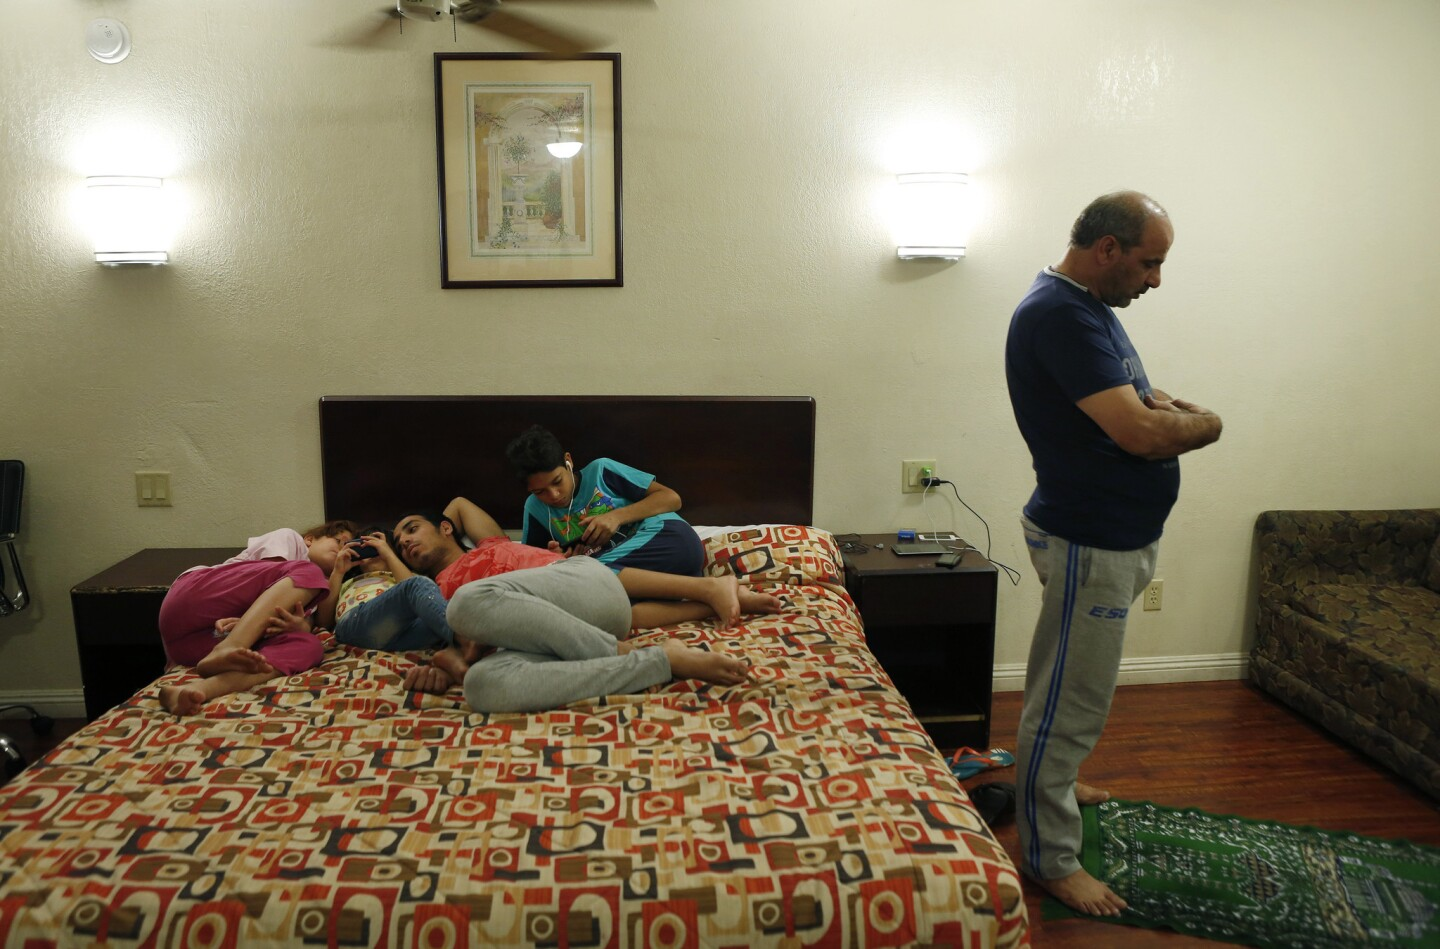 Fouad Wawieh, right, prays in his family's motel room in Pomona as four of his six children -- Maram, 9, left; Massa, 5; Omar, 19; and Omran, 12 -- use the family's smartphones. The family escaped from Syria via Egypt to arrive in the U.S.